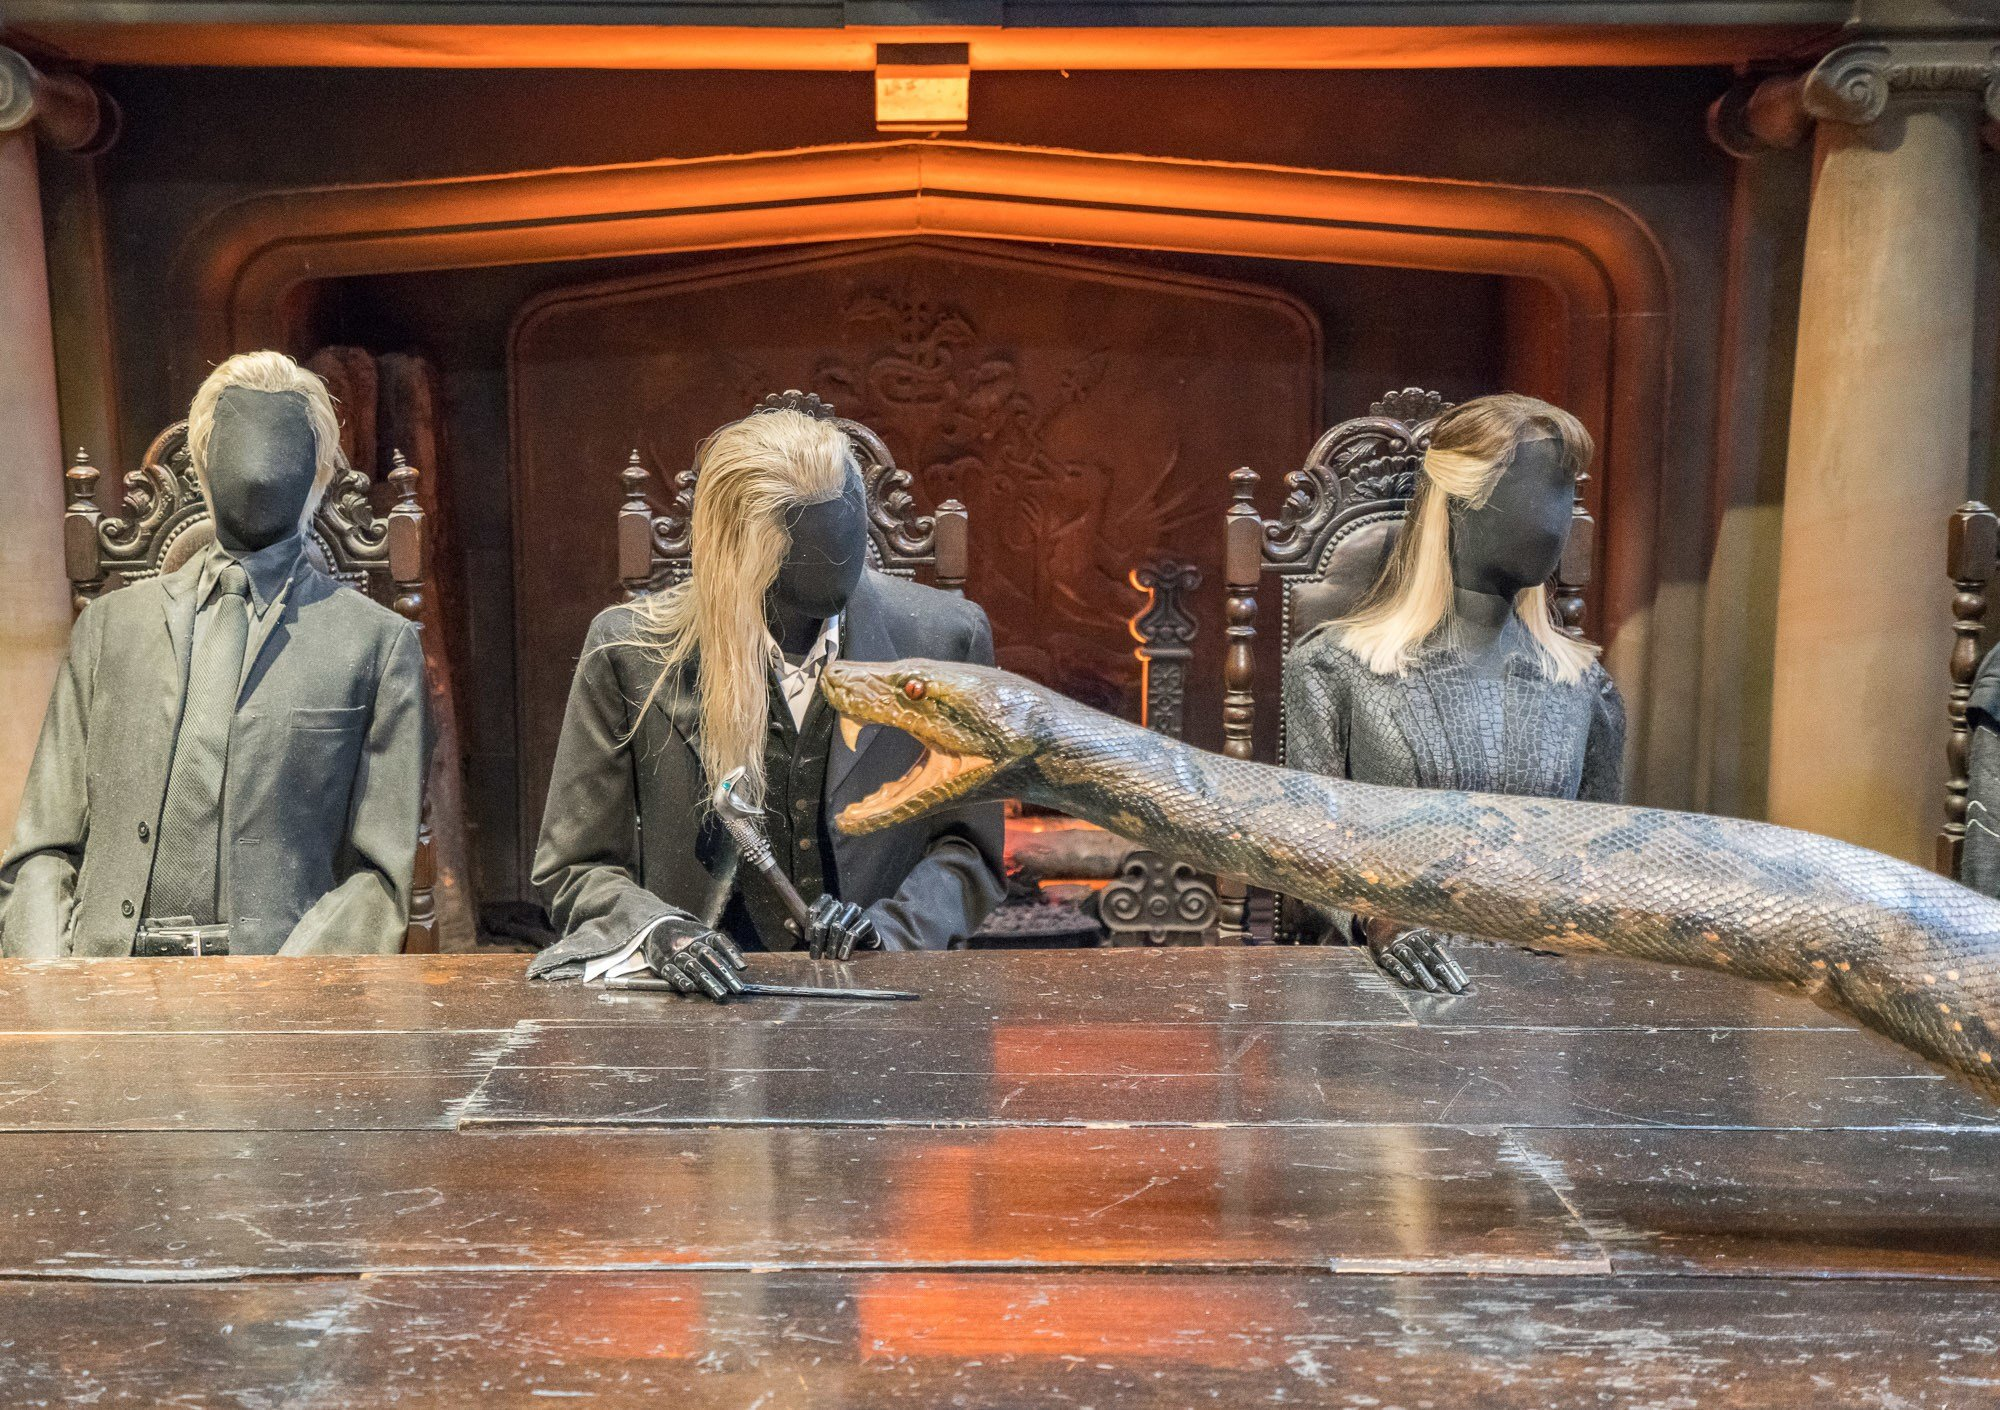 A scene in a Harry Potter movie where Nagini the snake crawls on the table, reenacted at the Warner Bros. Studio Tour London.